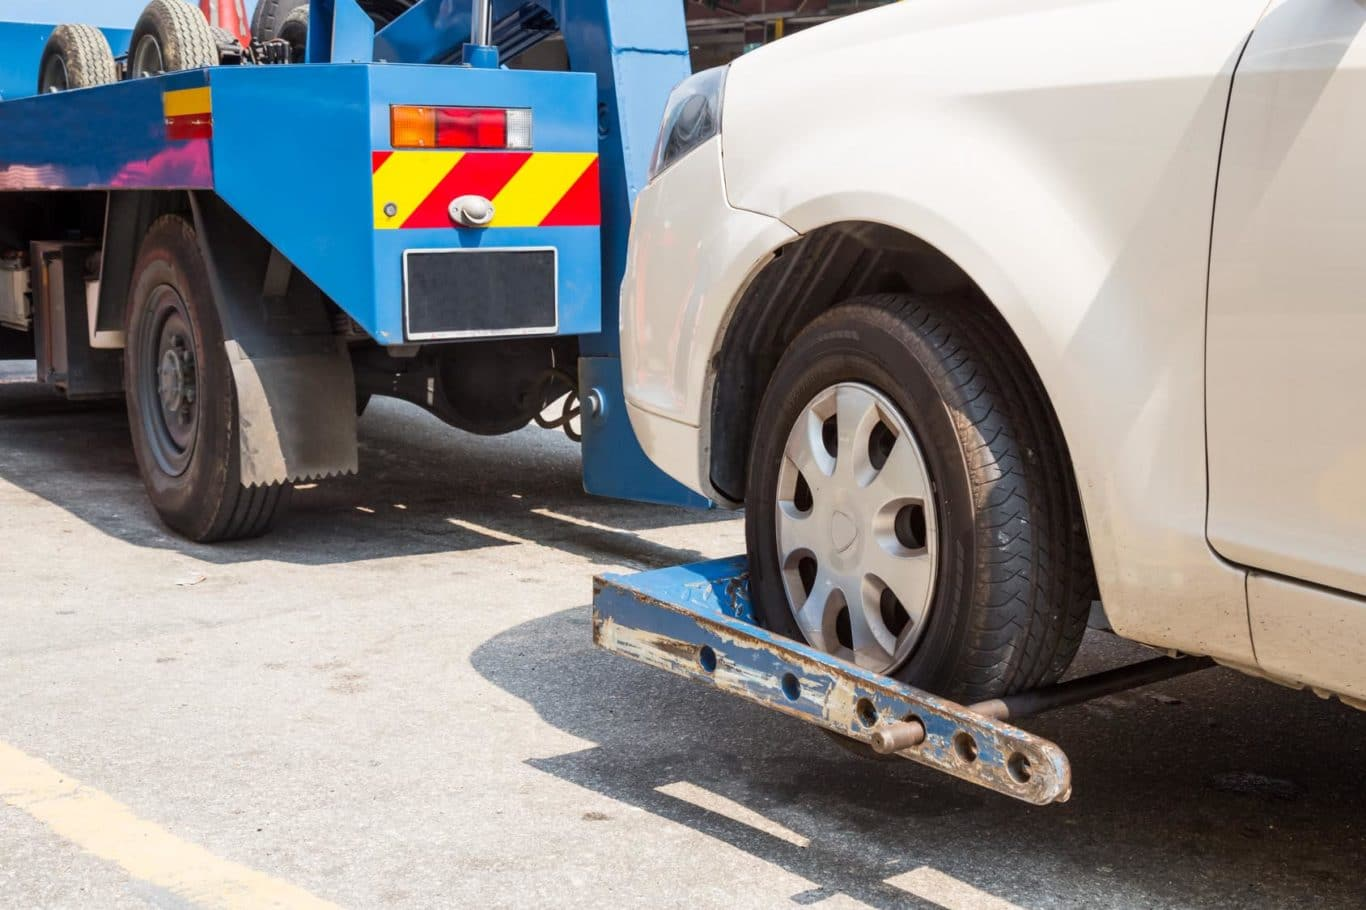 Aughrim, County Wicklow expert Car Towing services